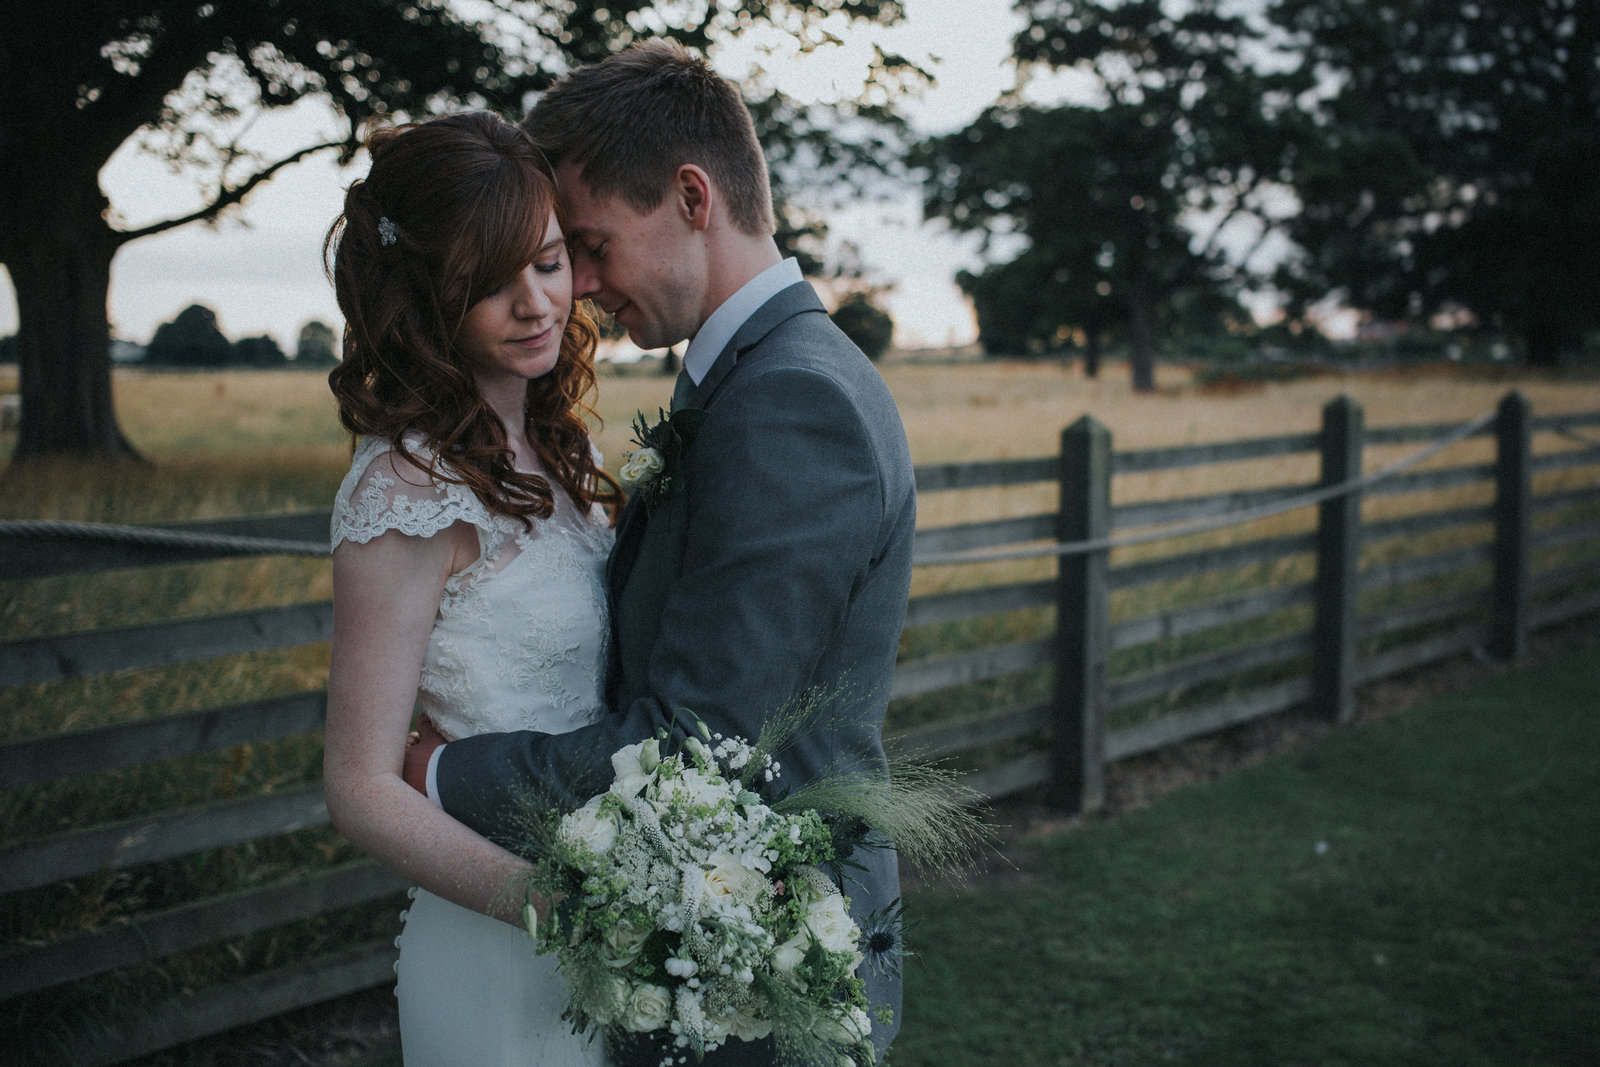 Bride & Groom hugging stood in front of a wooden fence by Yorkshire Wedding Photographer Jono Symonds